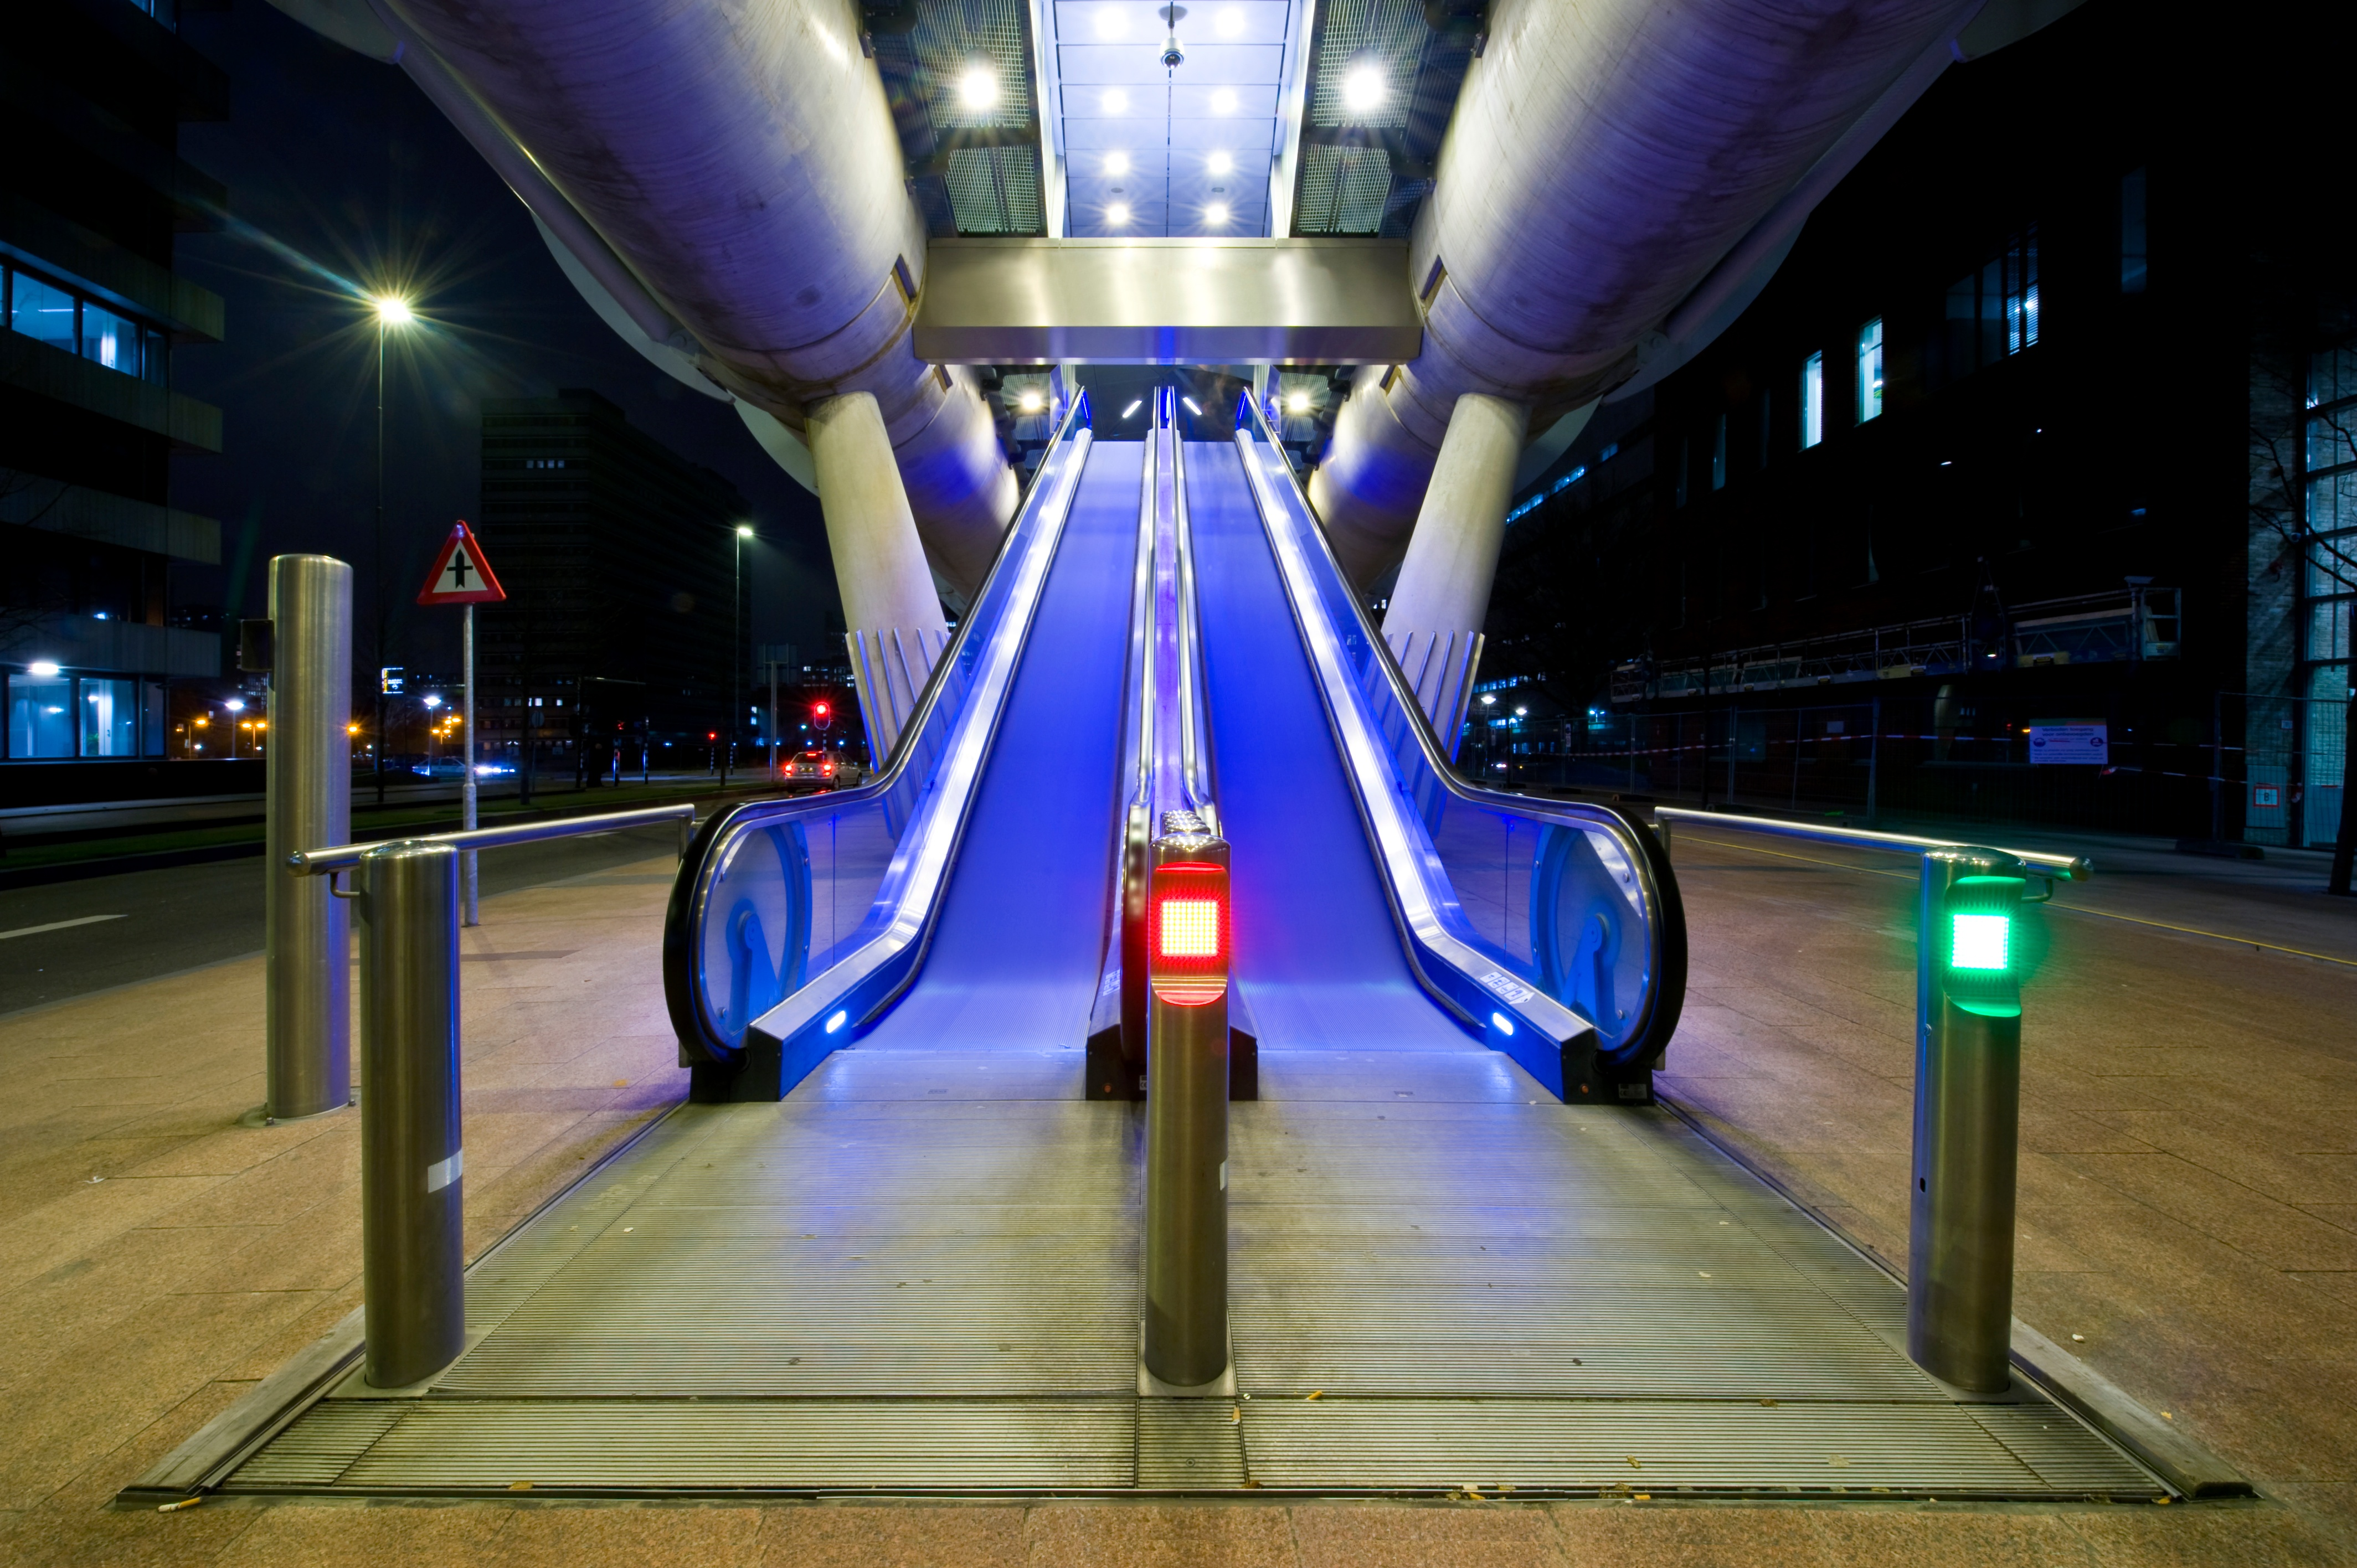 two escalators_red_green light